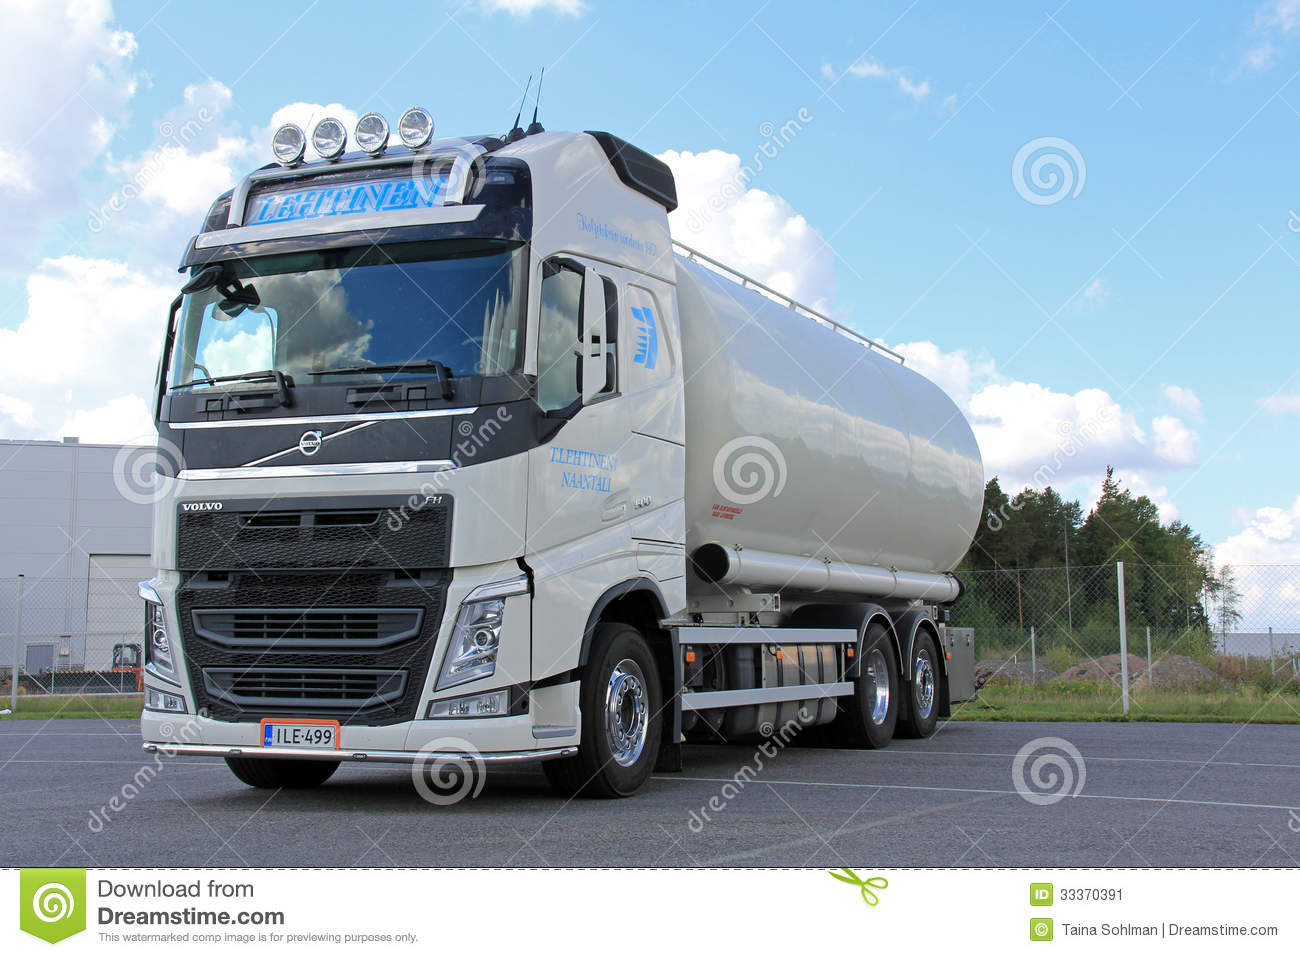 White Volvo Tank Truck For Food Transport Editorial Photo - Image: 33370391